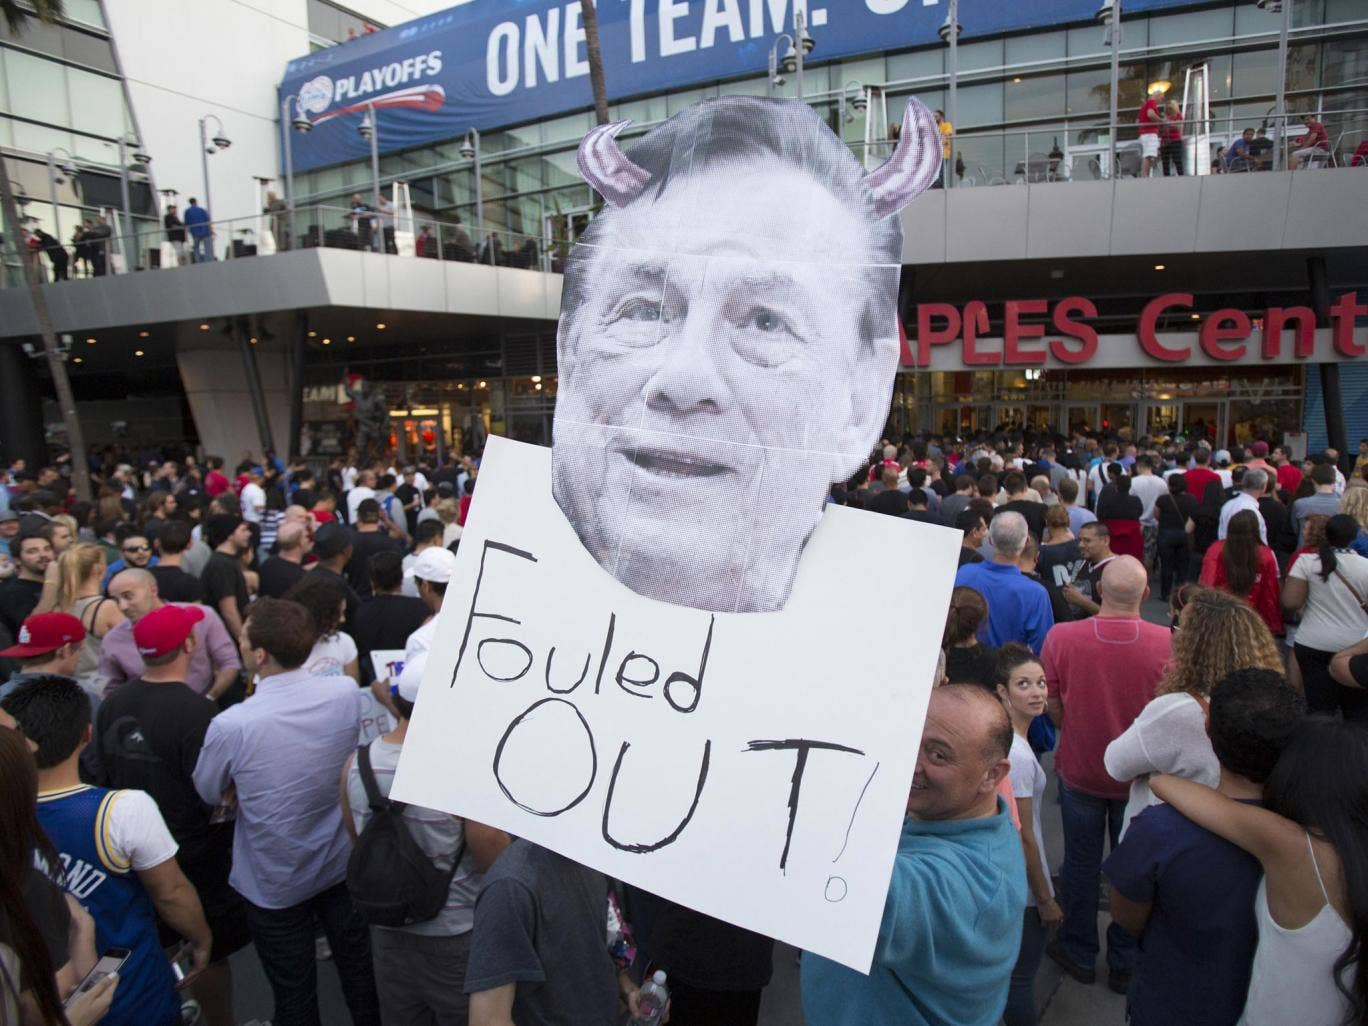 Basketball fans in Los Angeles make their feelings on Donald Sterling clear